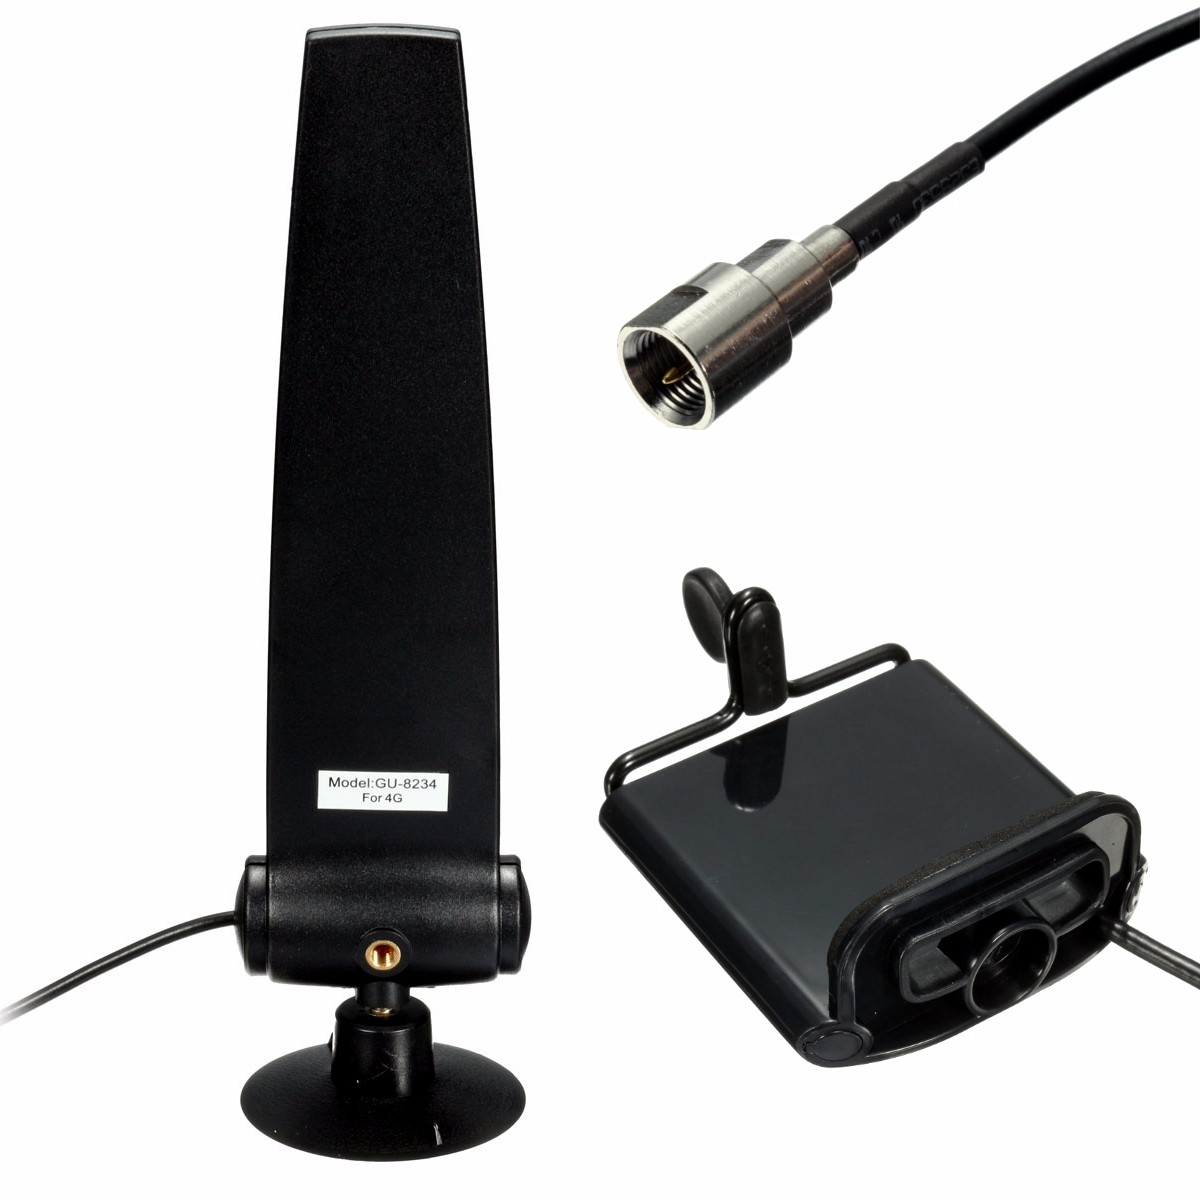 GSM/CDMA/850-1900 MHz Cell Phone Signal Booster Amplifier Antenna 9dBi with Holder